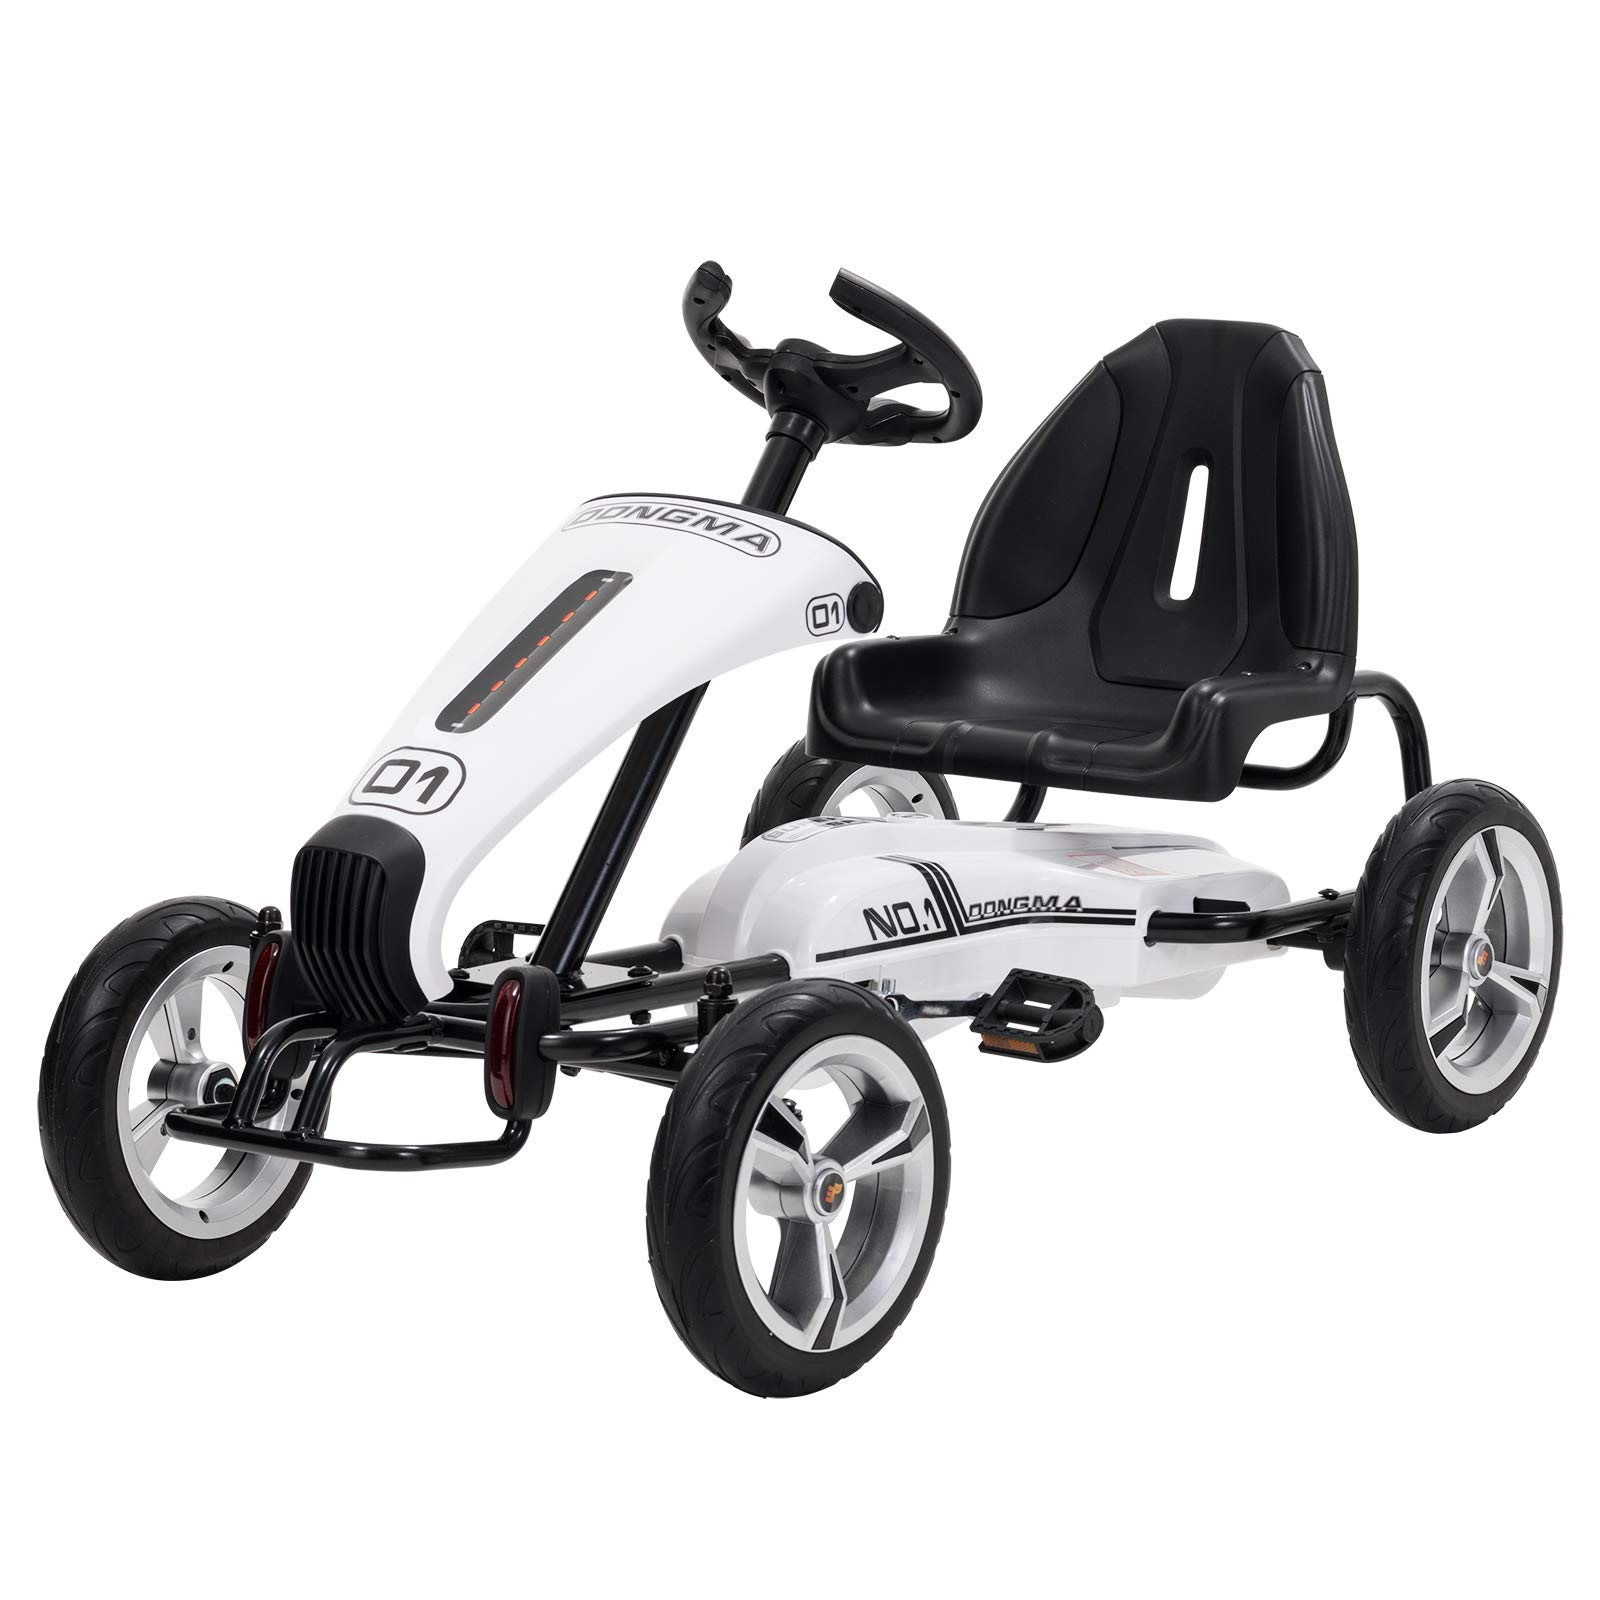 Uenjoy Pedal Go Kart Pedal Cars with Adjustable Seat, Sporty Steering Wheel, White